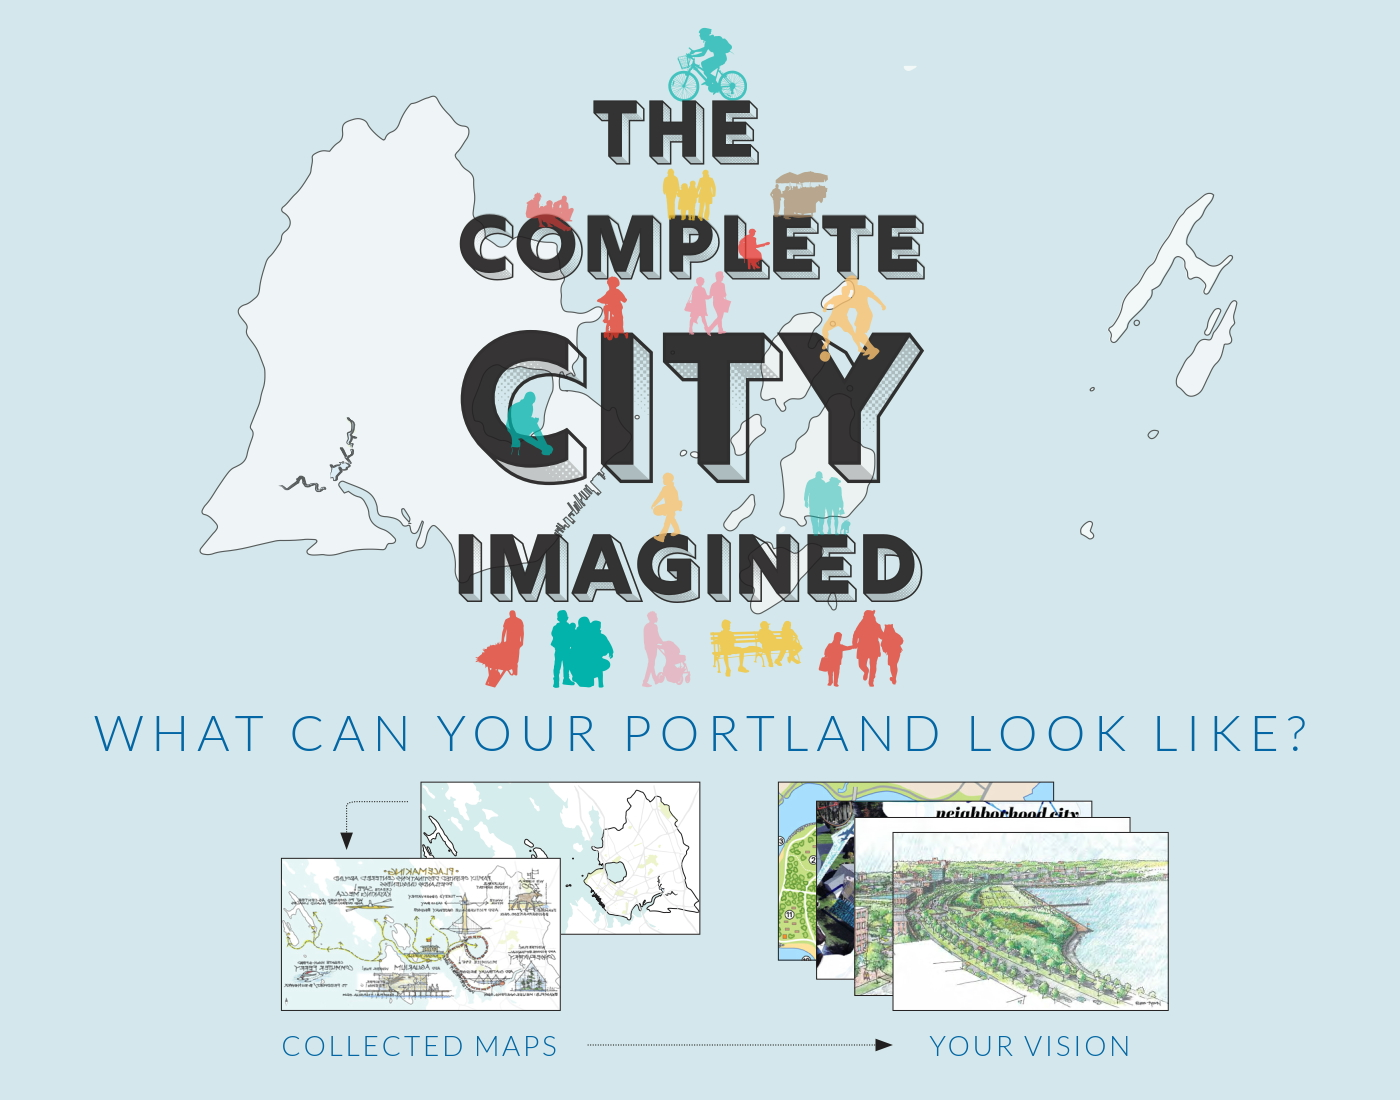 The Complete City: Imagined